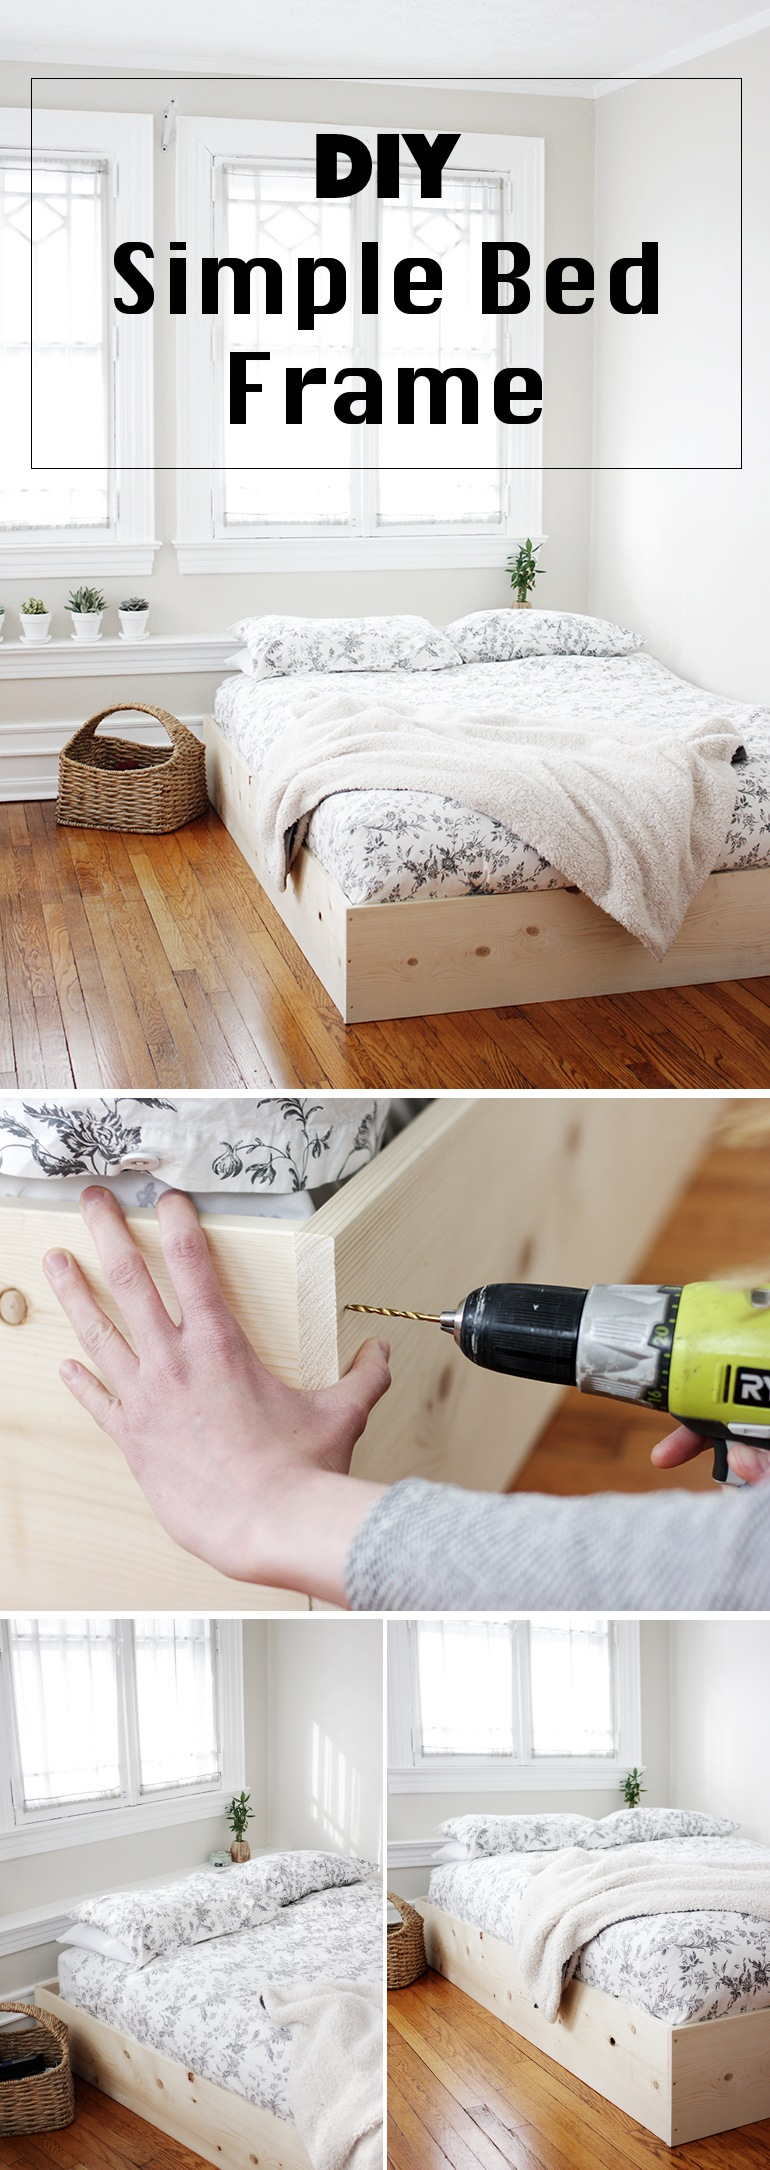 36 Easy DIY Bed Frame Projects to Upgrade Your Bedroom ...